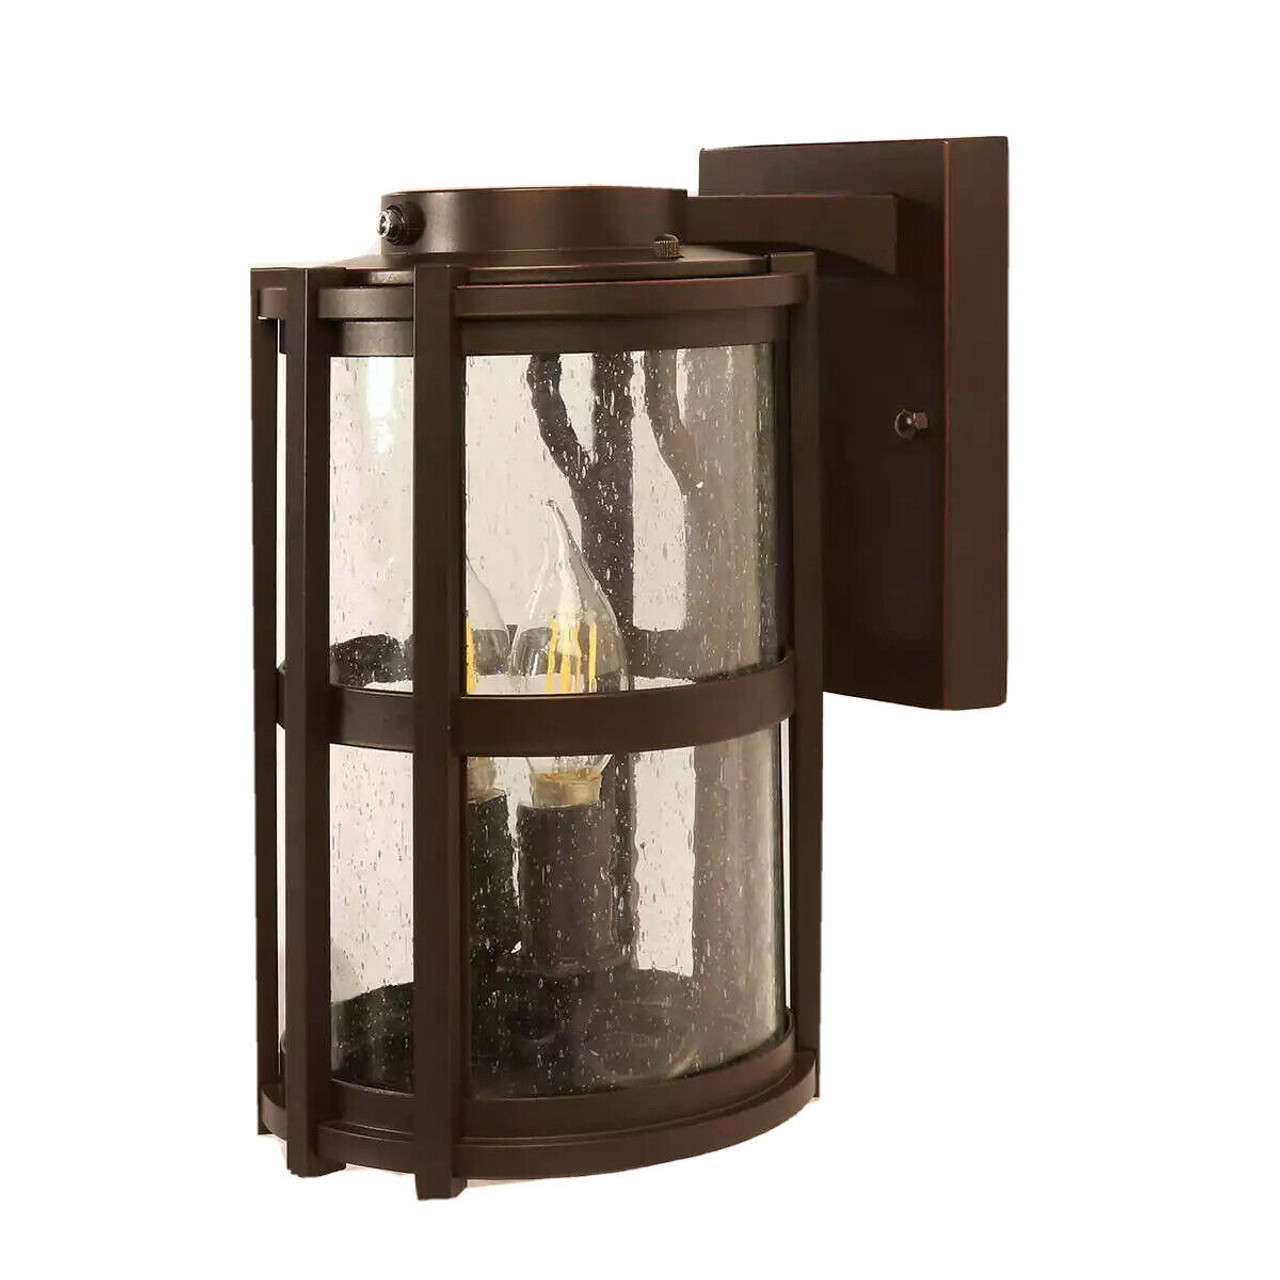 Image of: Feit Elec 11 Led Round Coach Light Outdoor Bronze Wall Lantern W Seeded Glass